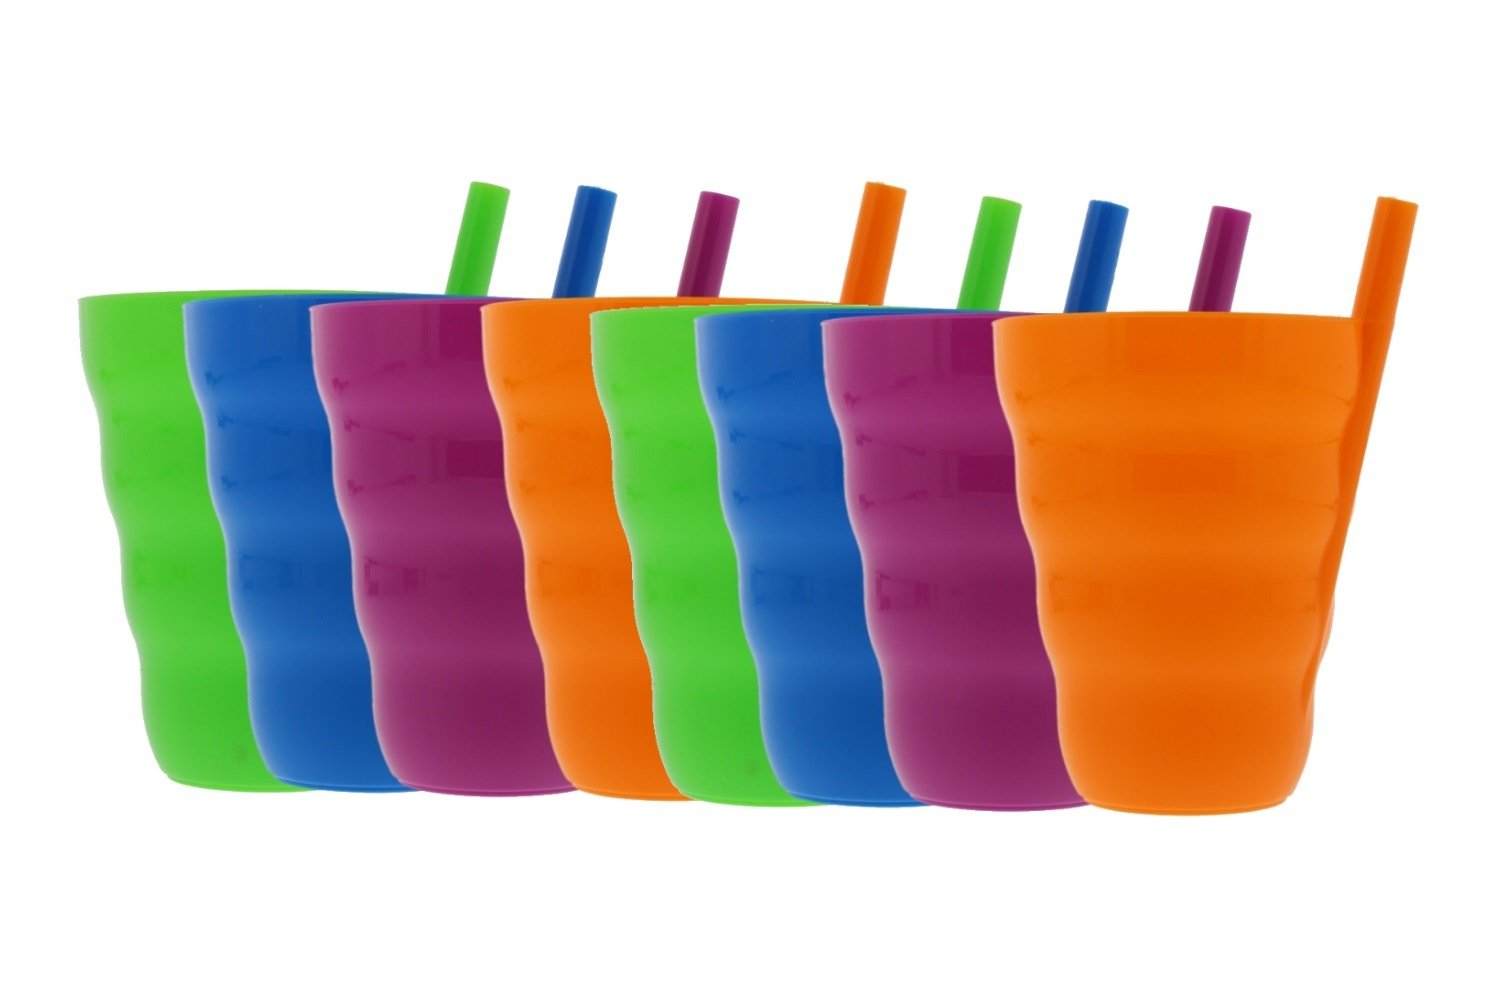 Arrow Sip-A-Cup with Built In Straw For Kids Includes Purple, Blue, Green, Orange (8 Pack)